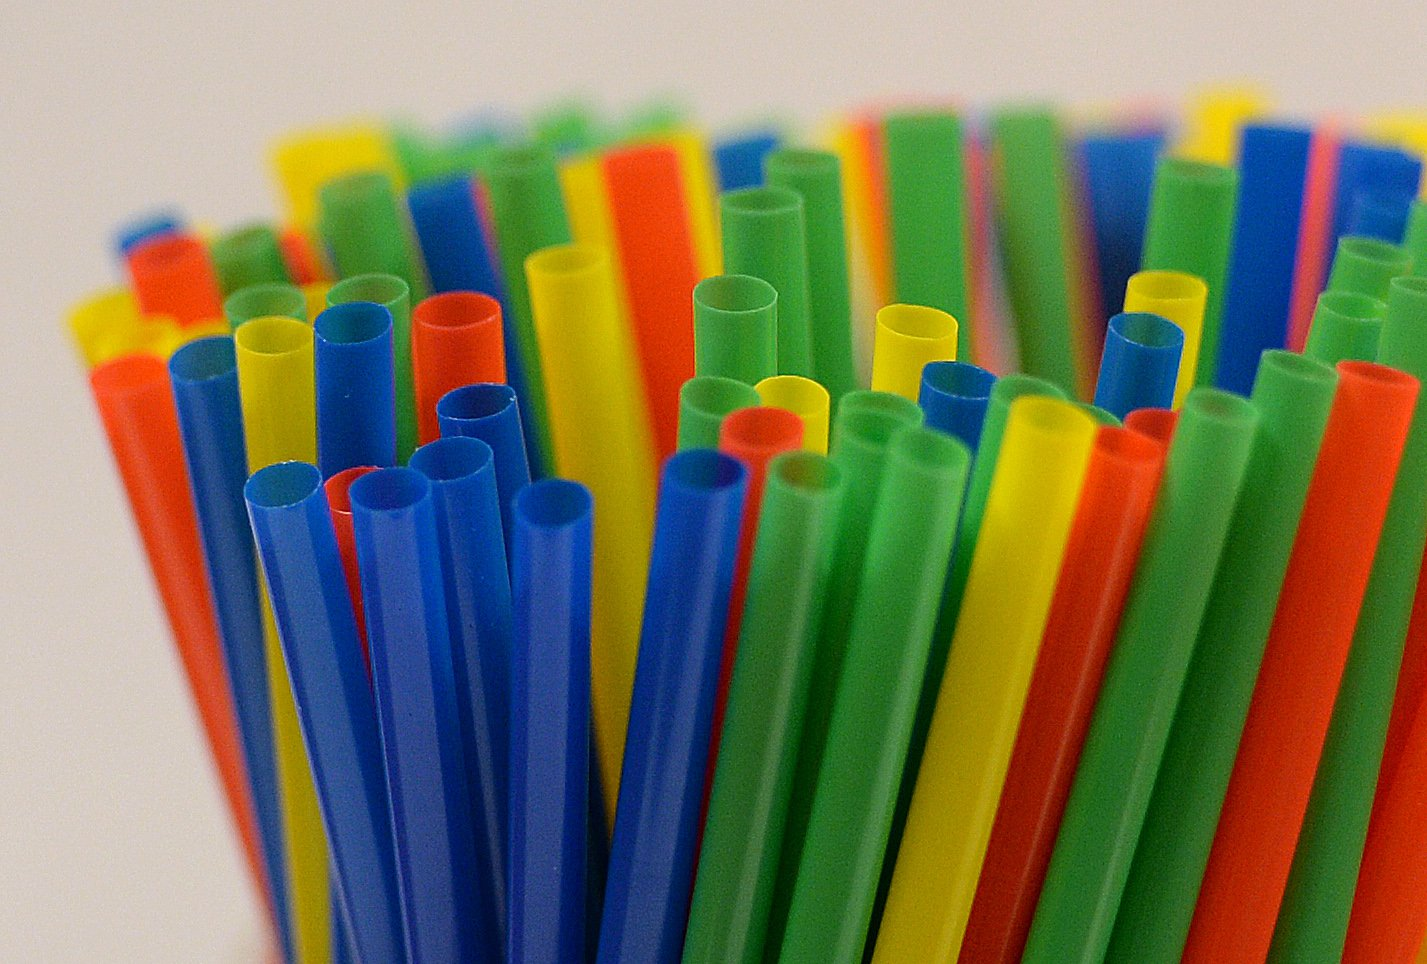 File photo dated 08/01/18 of plastic straws. Environment Secretary Michael Gove has launched a consultation on the Government's plan to ban plastic straws, stirrers and cotton buds, which he said can devastate the world's oceans and wildlife. PRESS ASSOCIATION Photo. Issue date: Monday October 22, 2018. See PA story ENVIRONMENT Plastic. Photo credit should read: Kirsty O'Connor/PA Wire